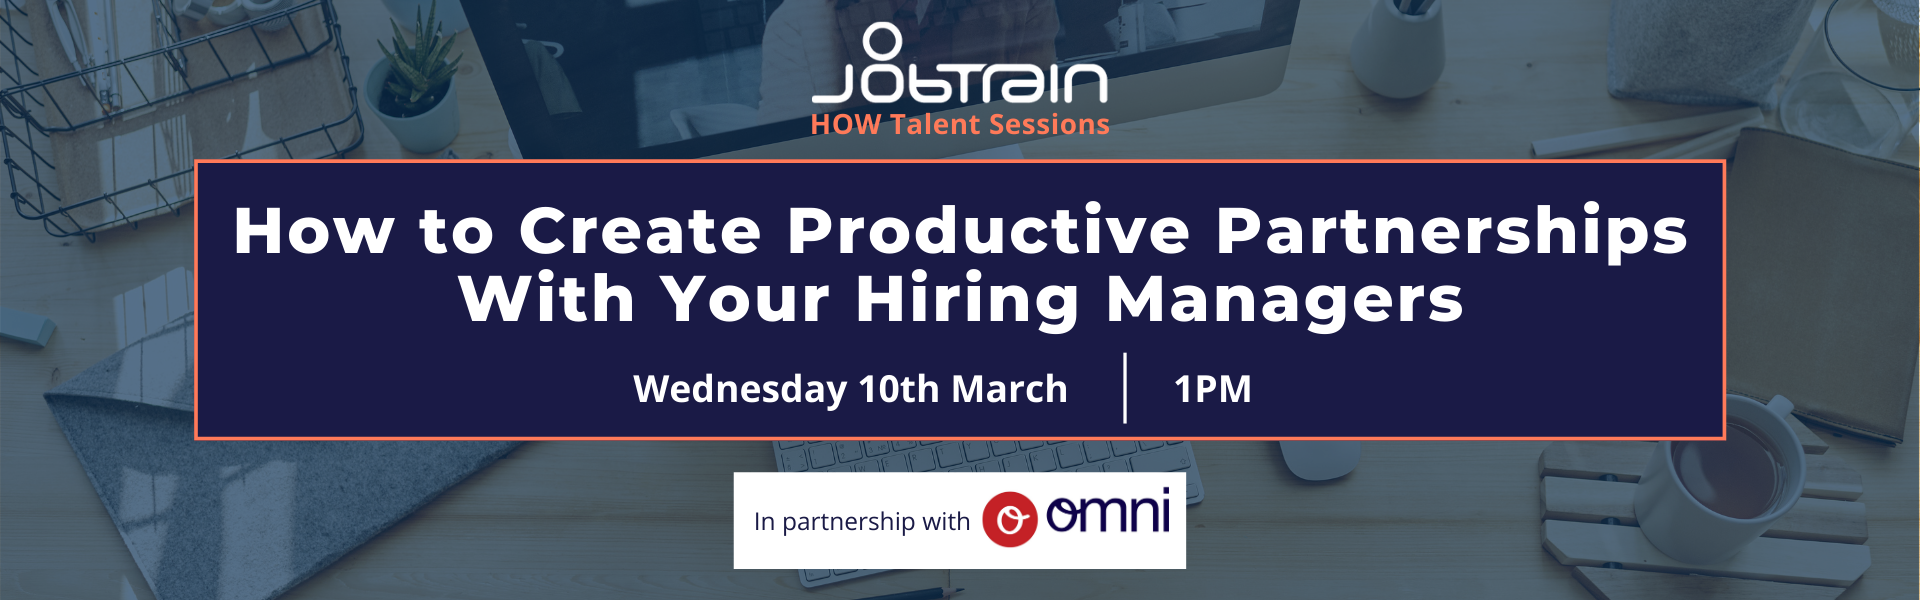 WEBINAR | How to Create Productive Partnerships With Your Hiring Managers